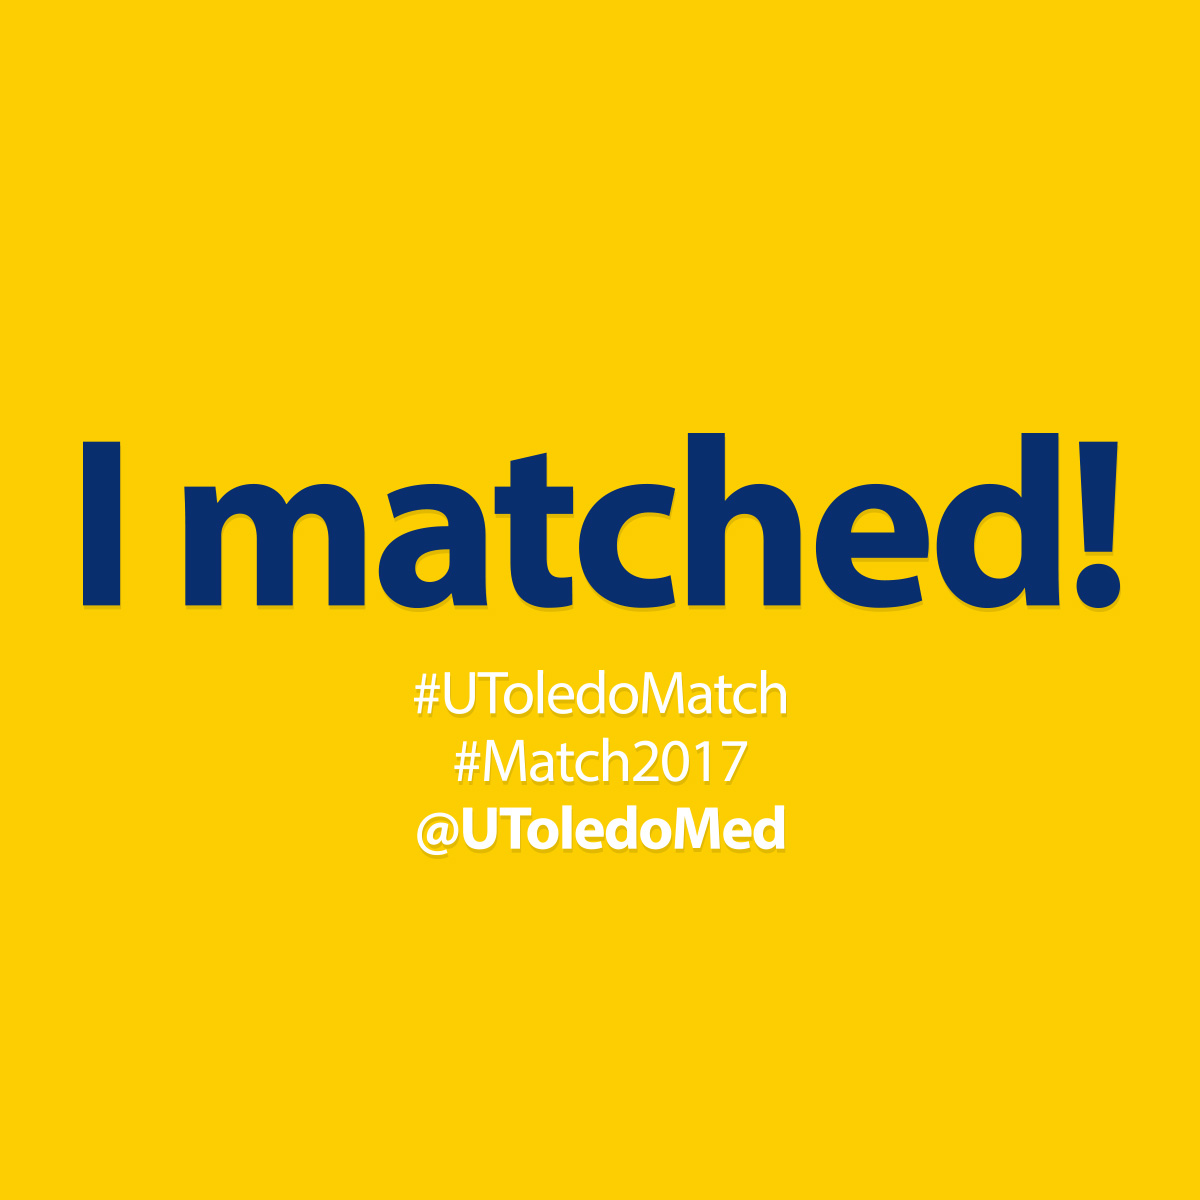 Match Day 2017 social media image